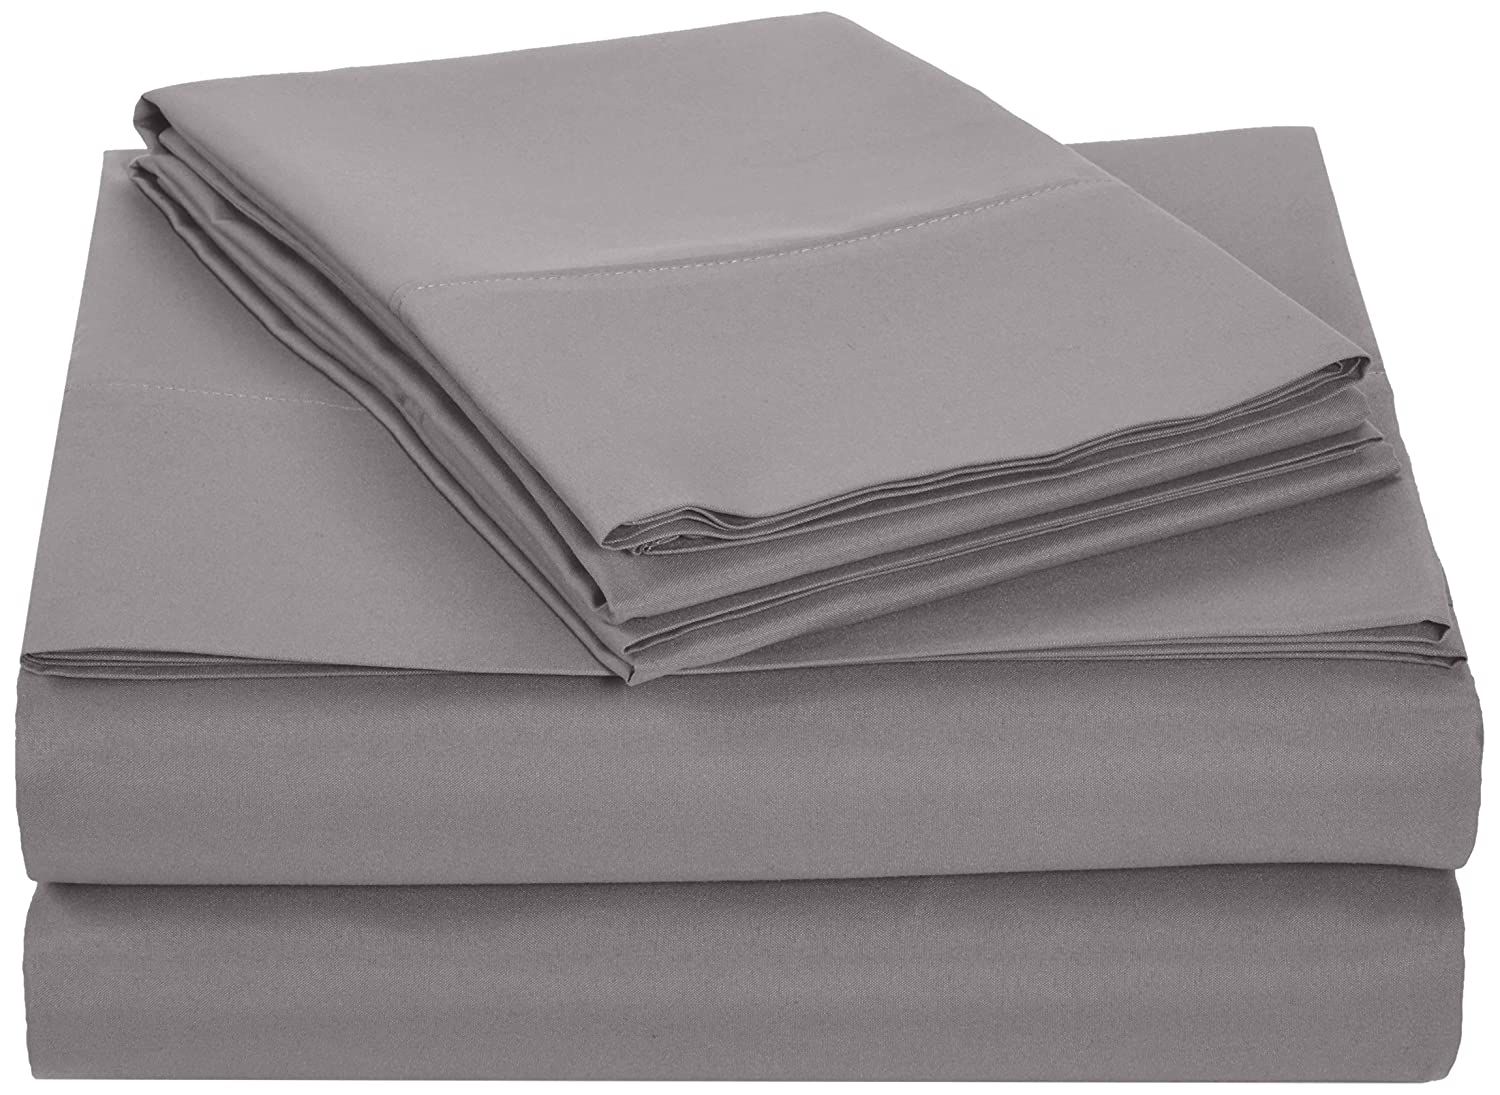 Loloi Cover with Pollyfill and Zipper Closure Throw Pillow 22 X 22 Rust//Grey Loloi Rugs Inc P0679